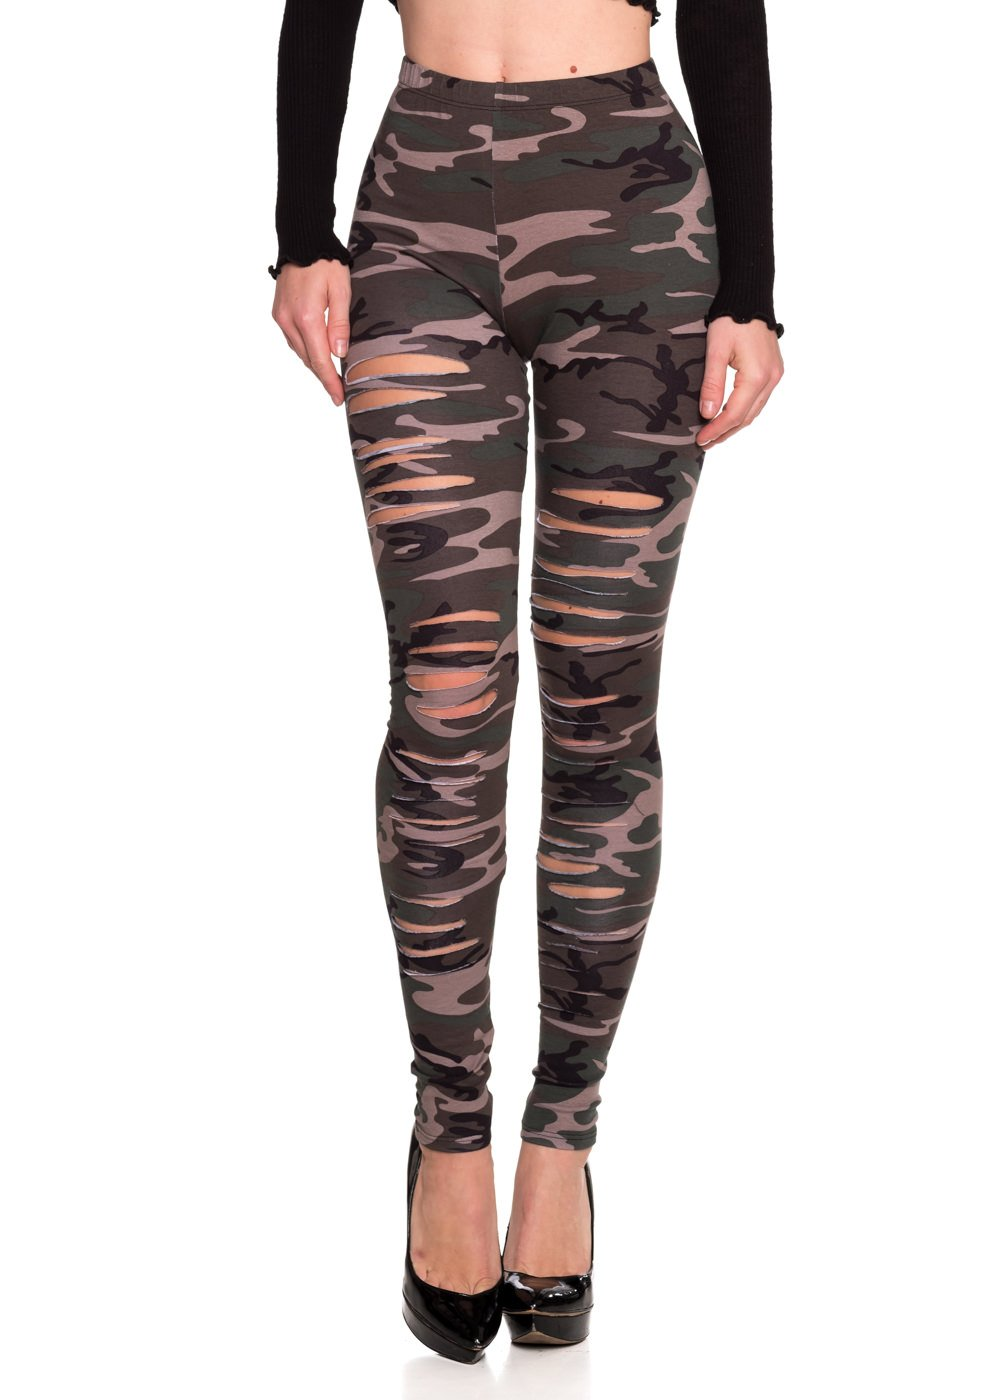 Women's J2 Love Ripped Cotton Legging, Small, Camouflage